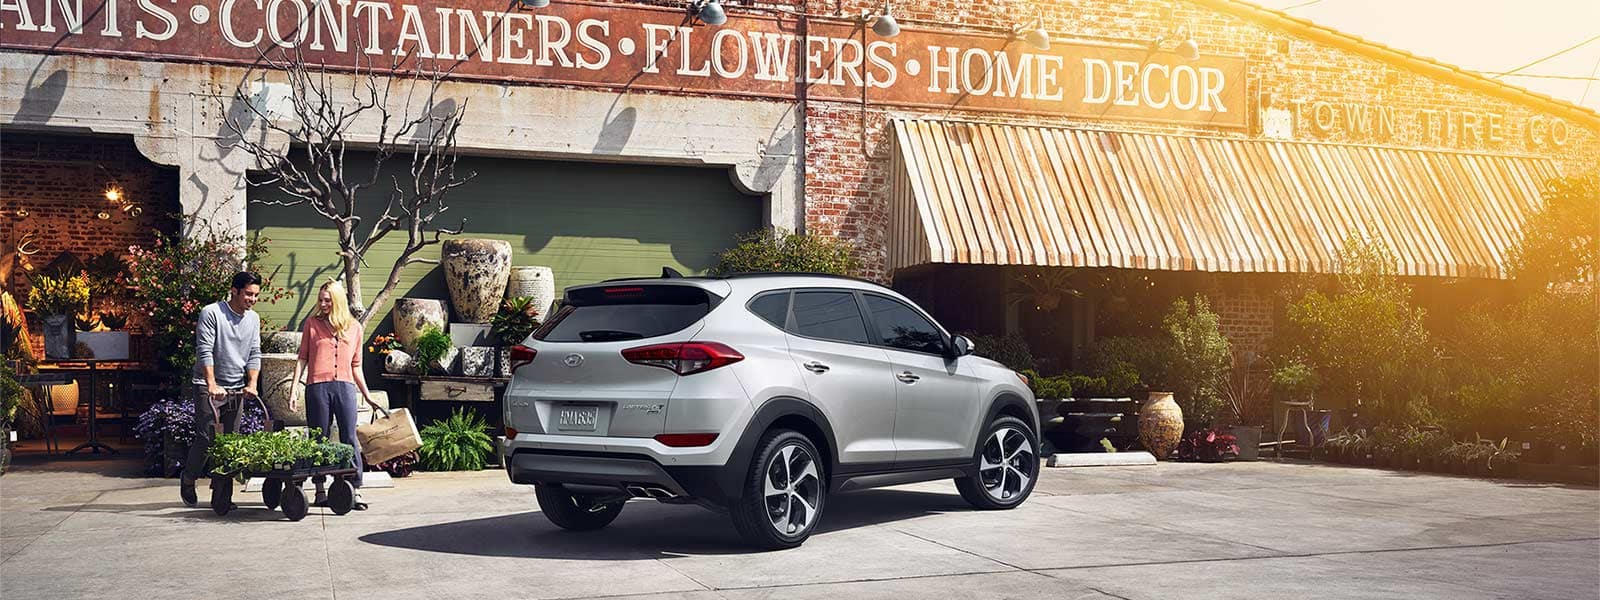 2016 Tucson Limited Ultimate Silver 0026 Storefront